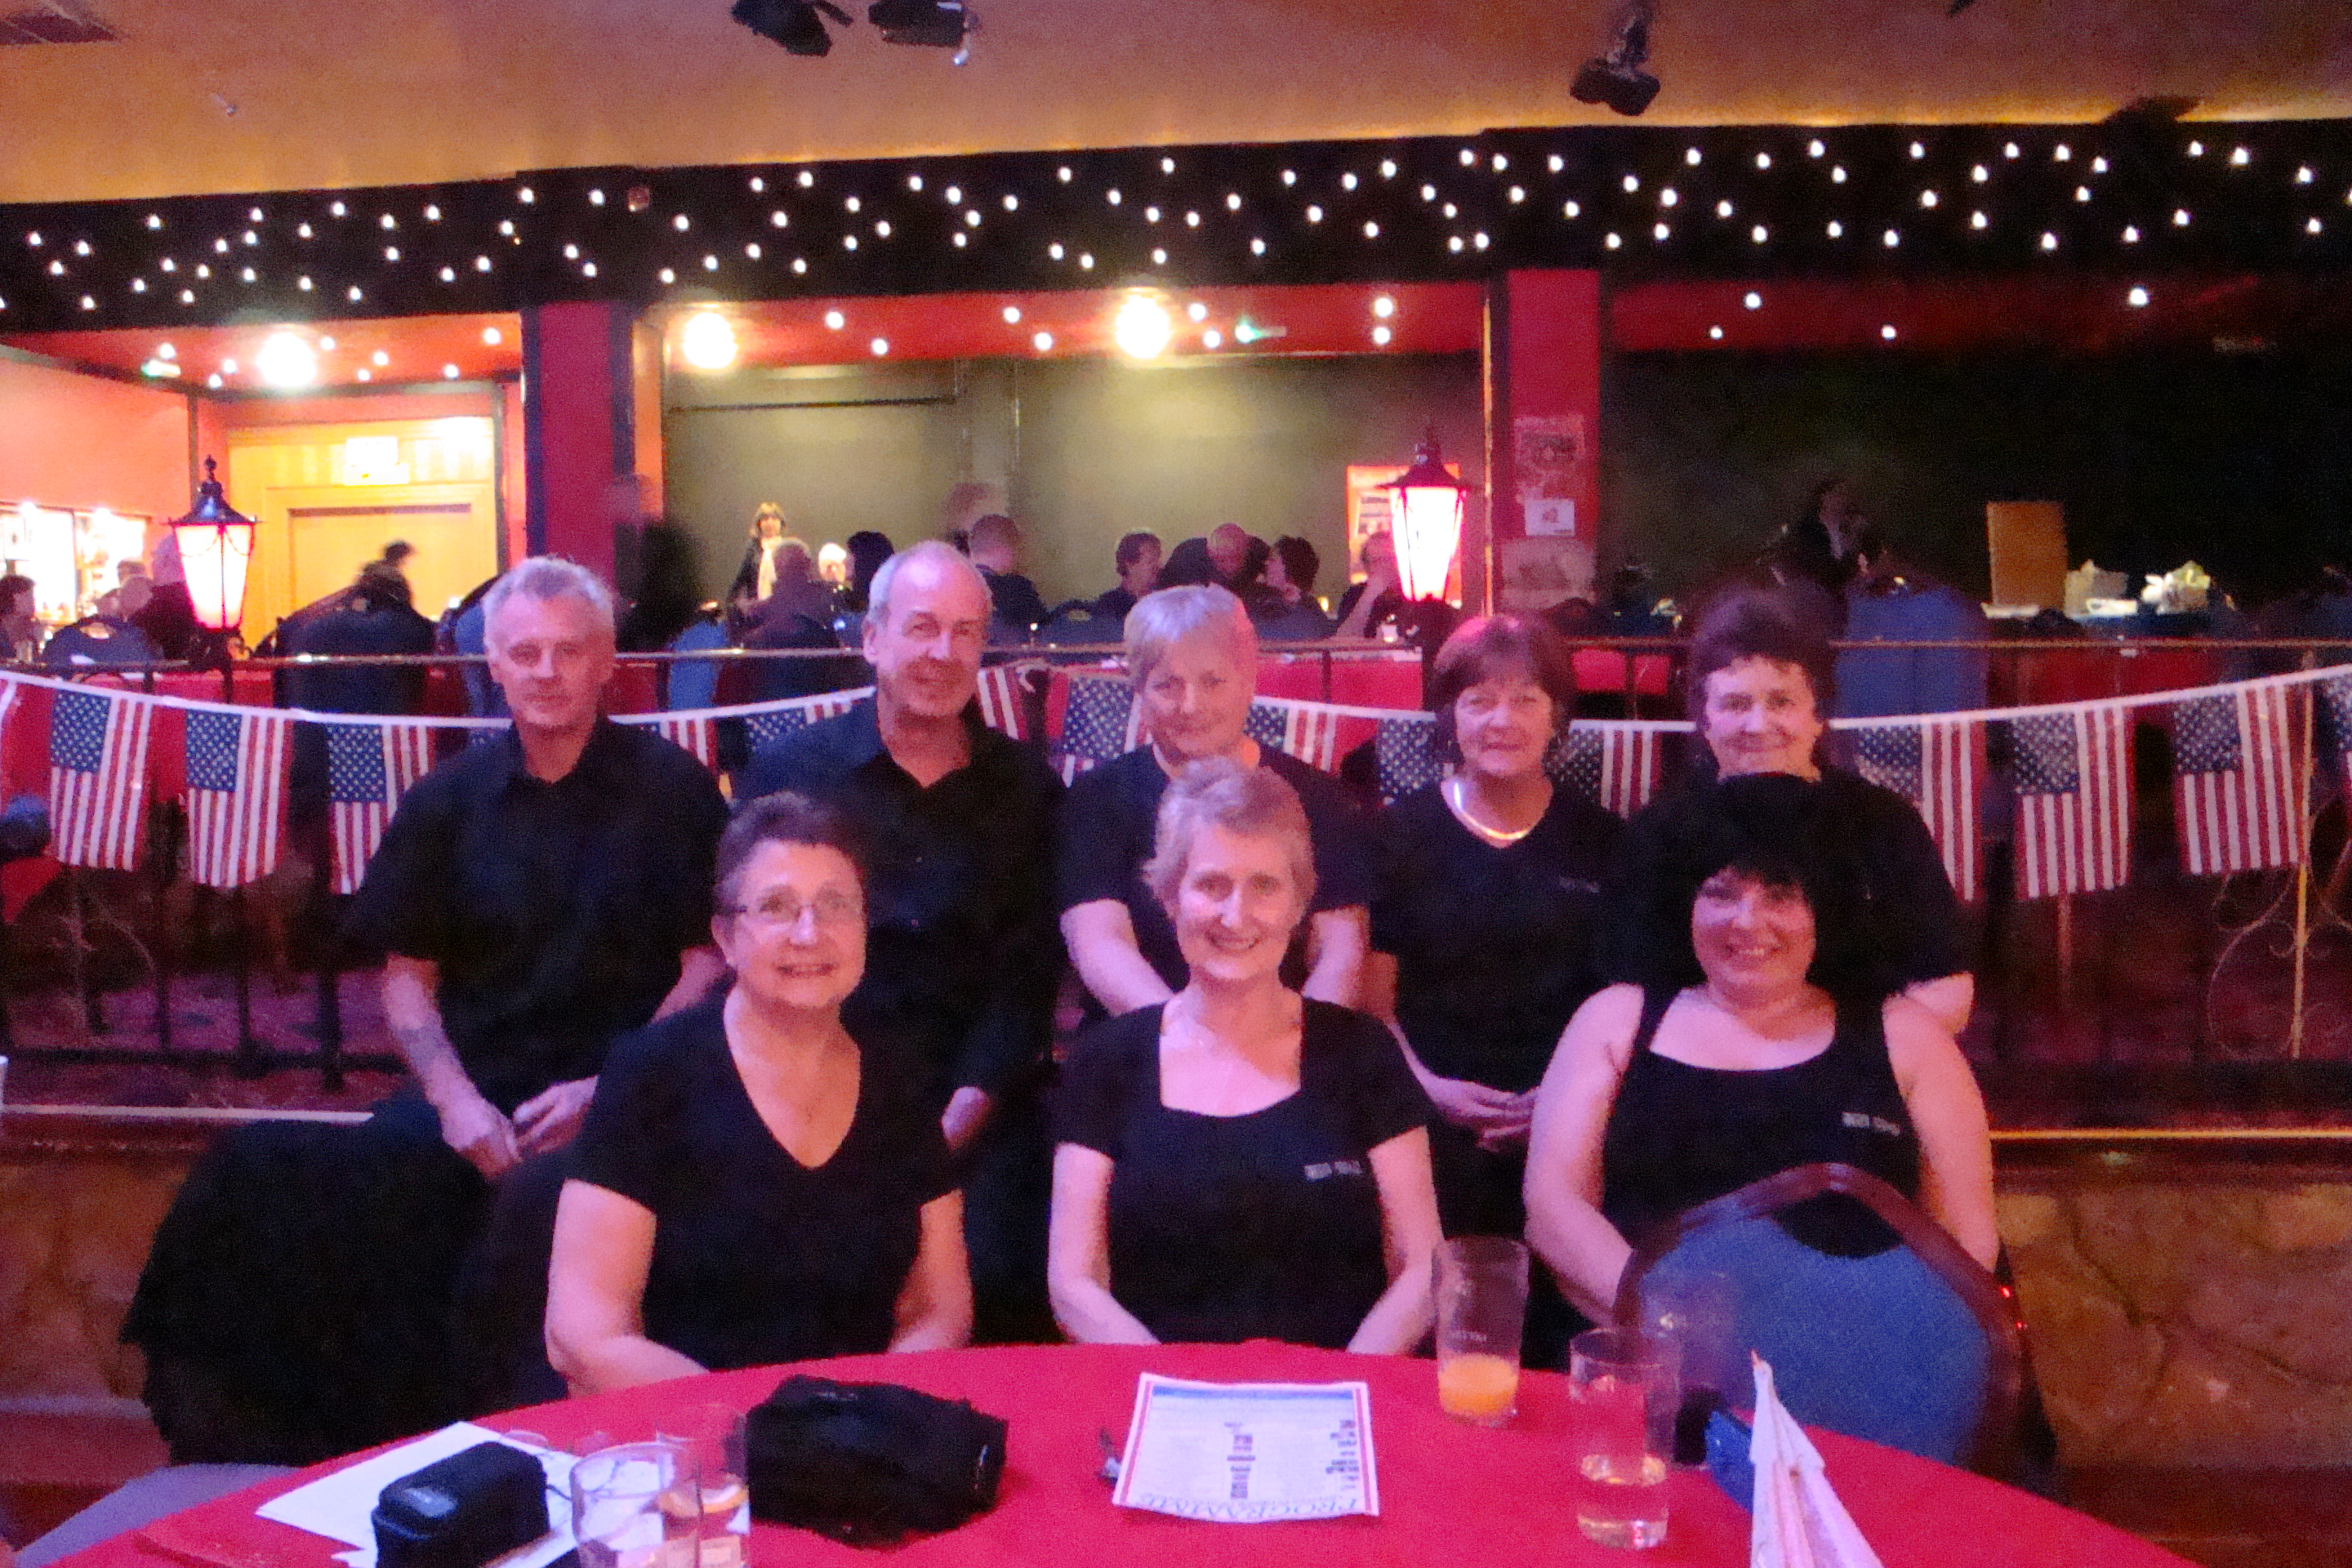 Dixie Belles at Lakeside, Frimley Green, April 2013